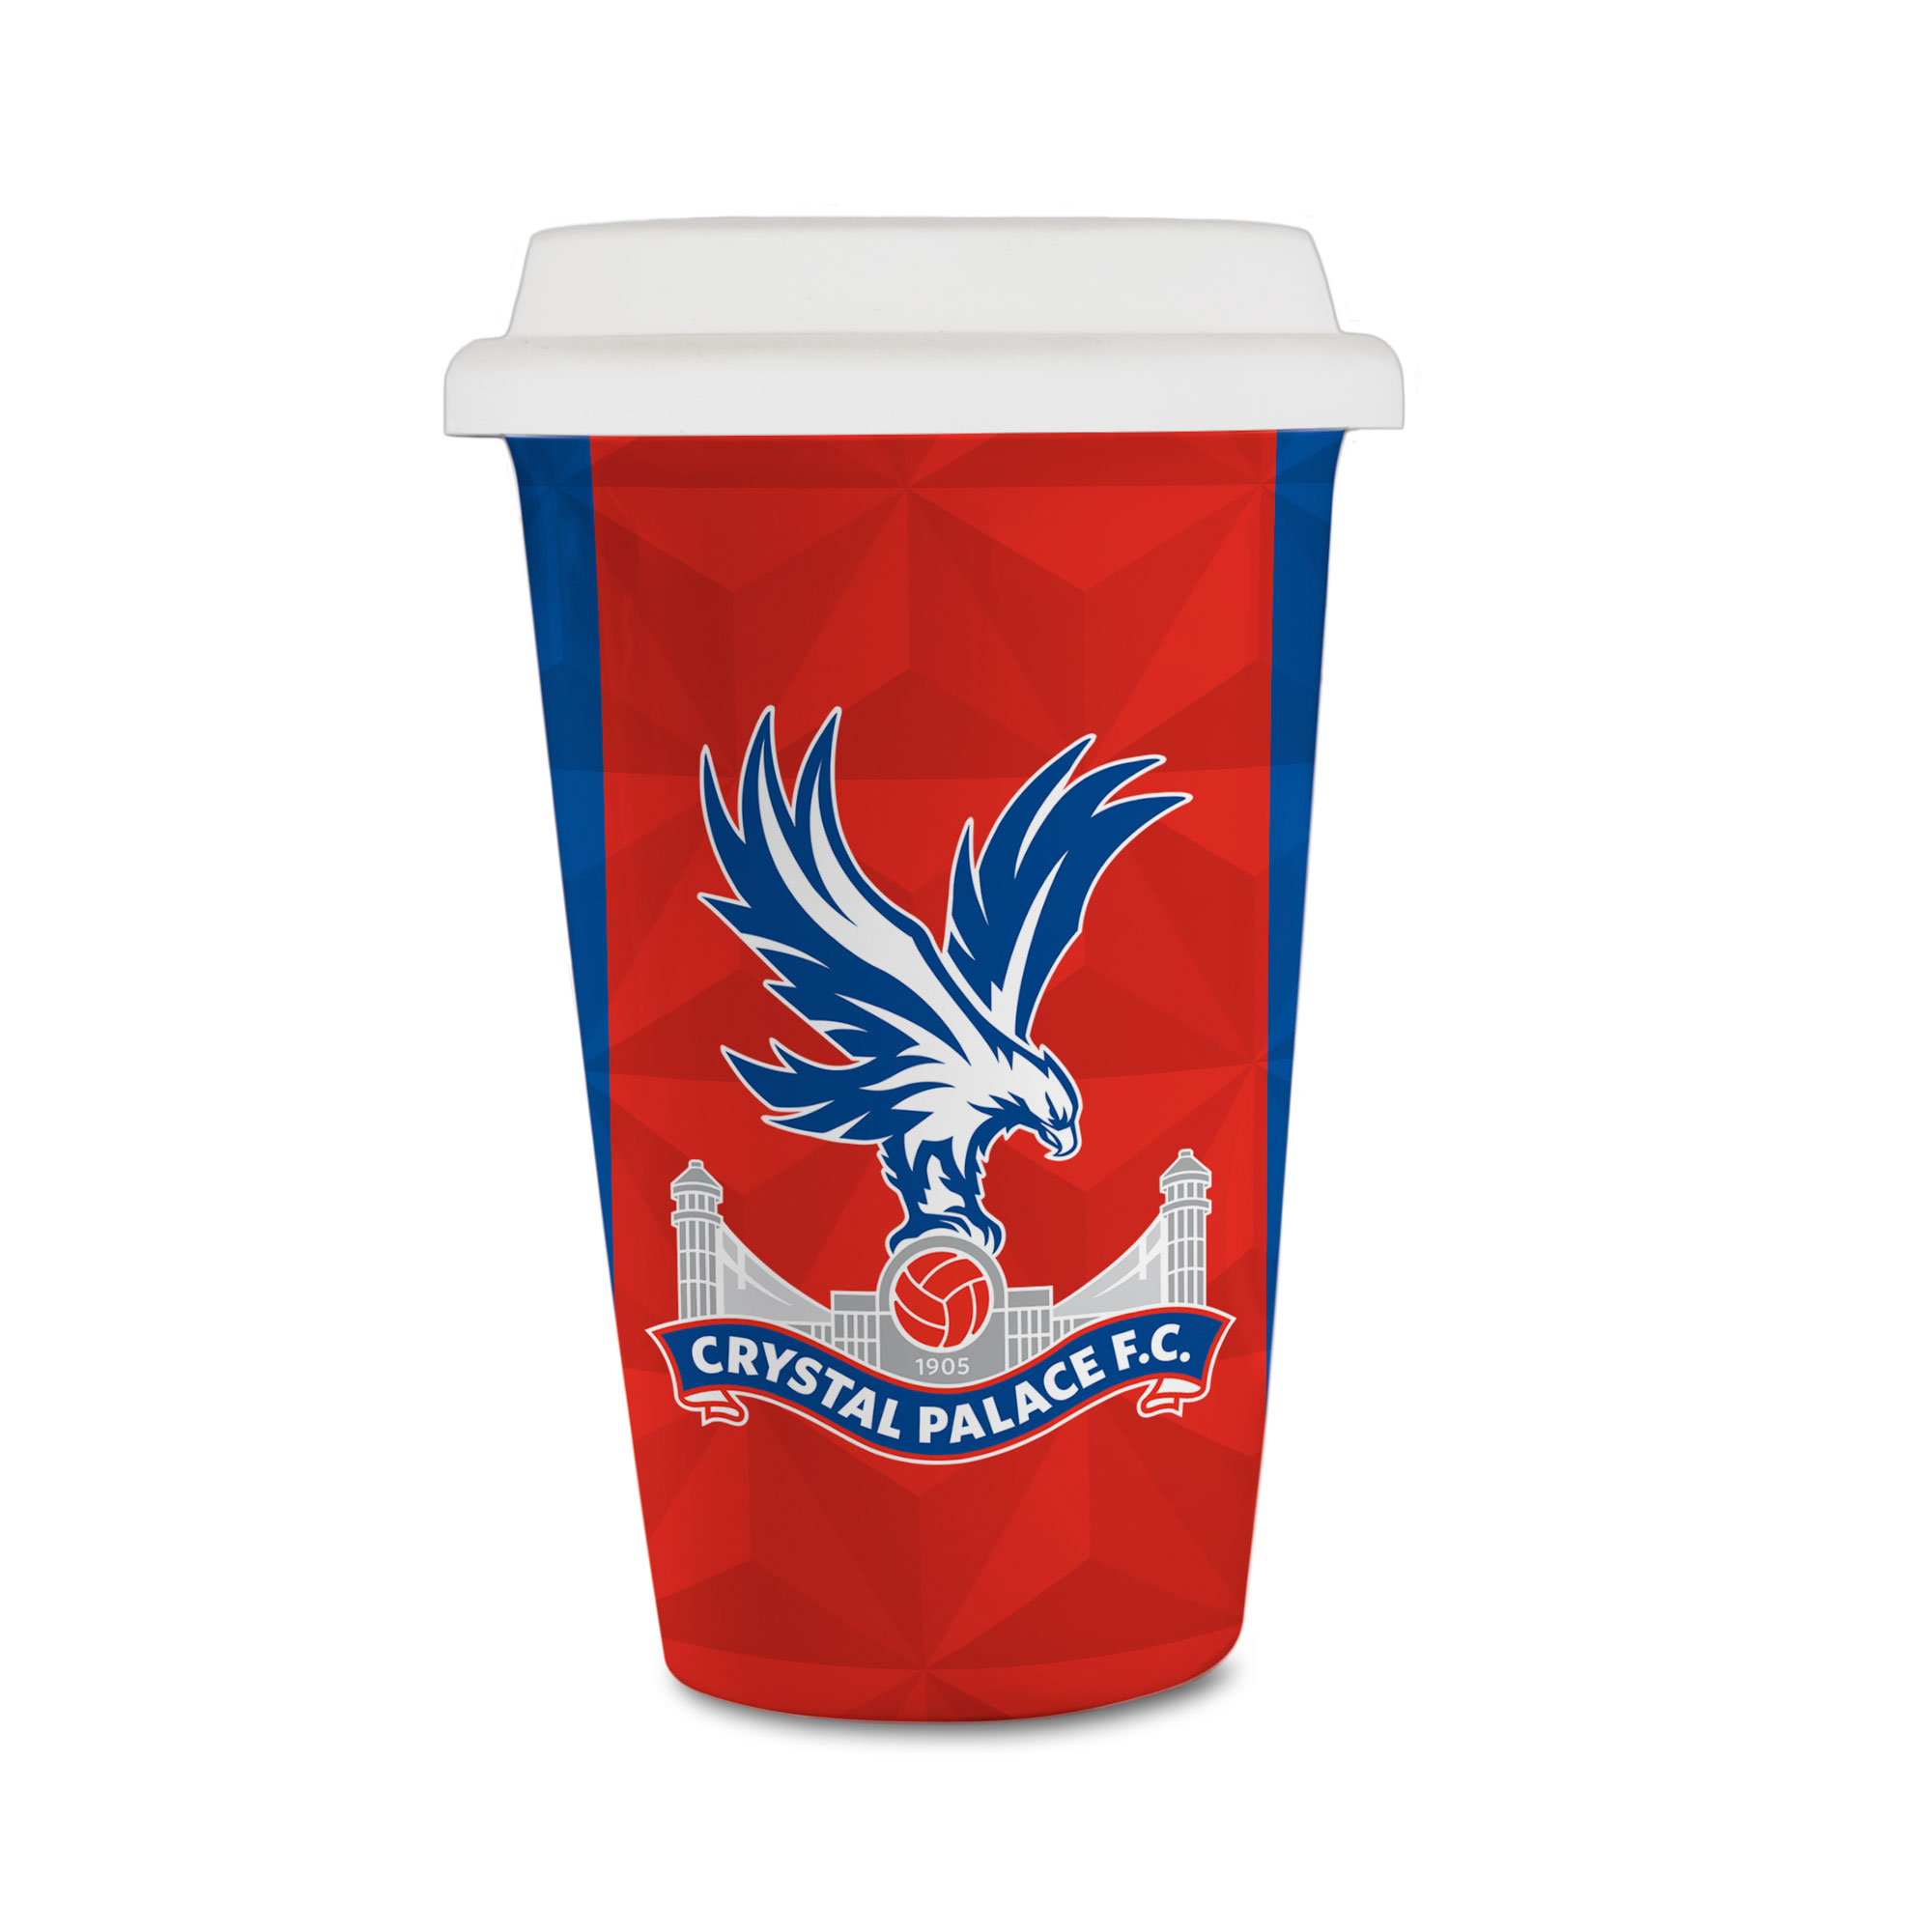 Crystal Palace FC Crest Reusable Cup